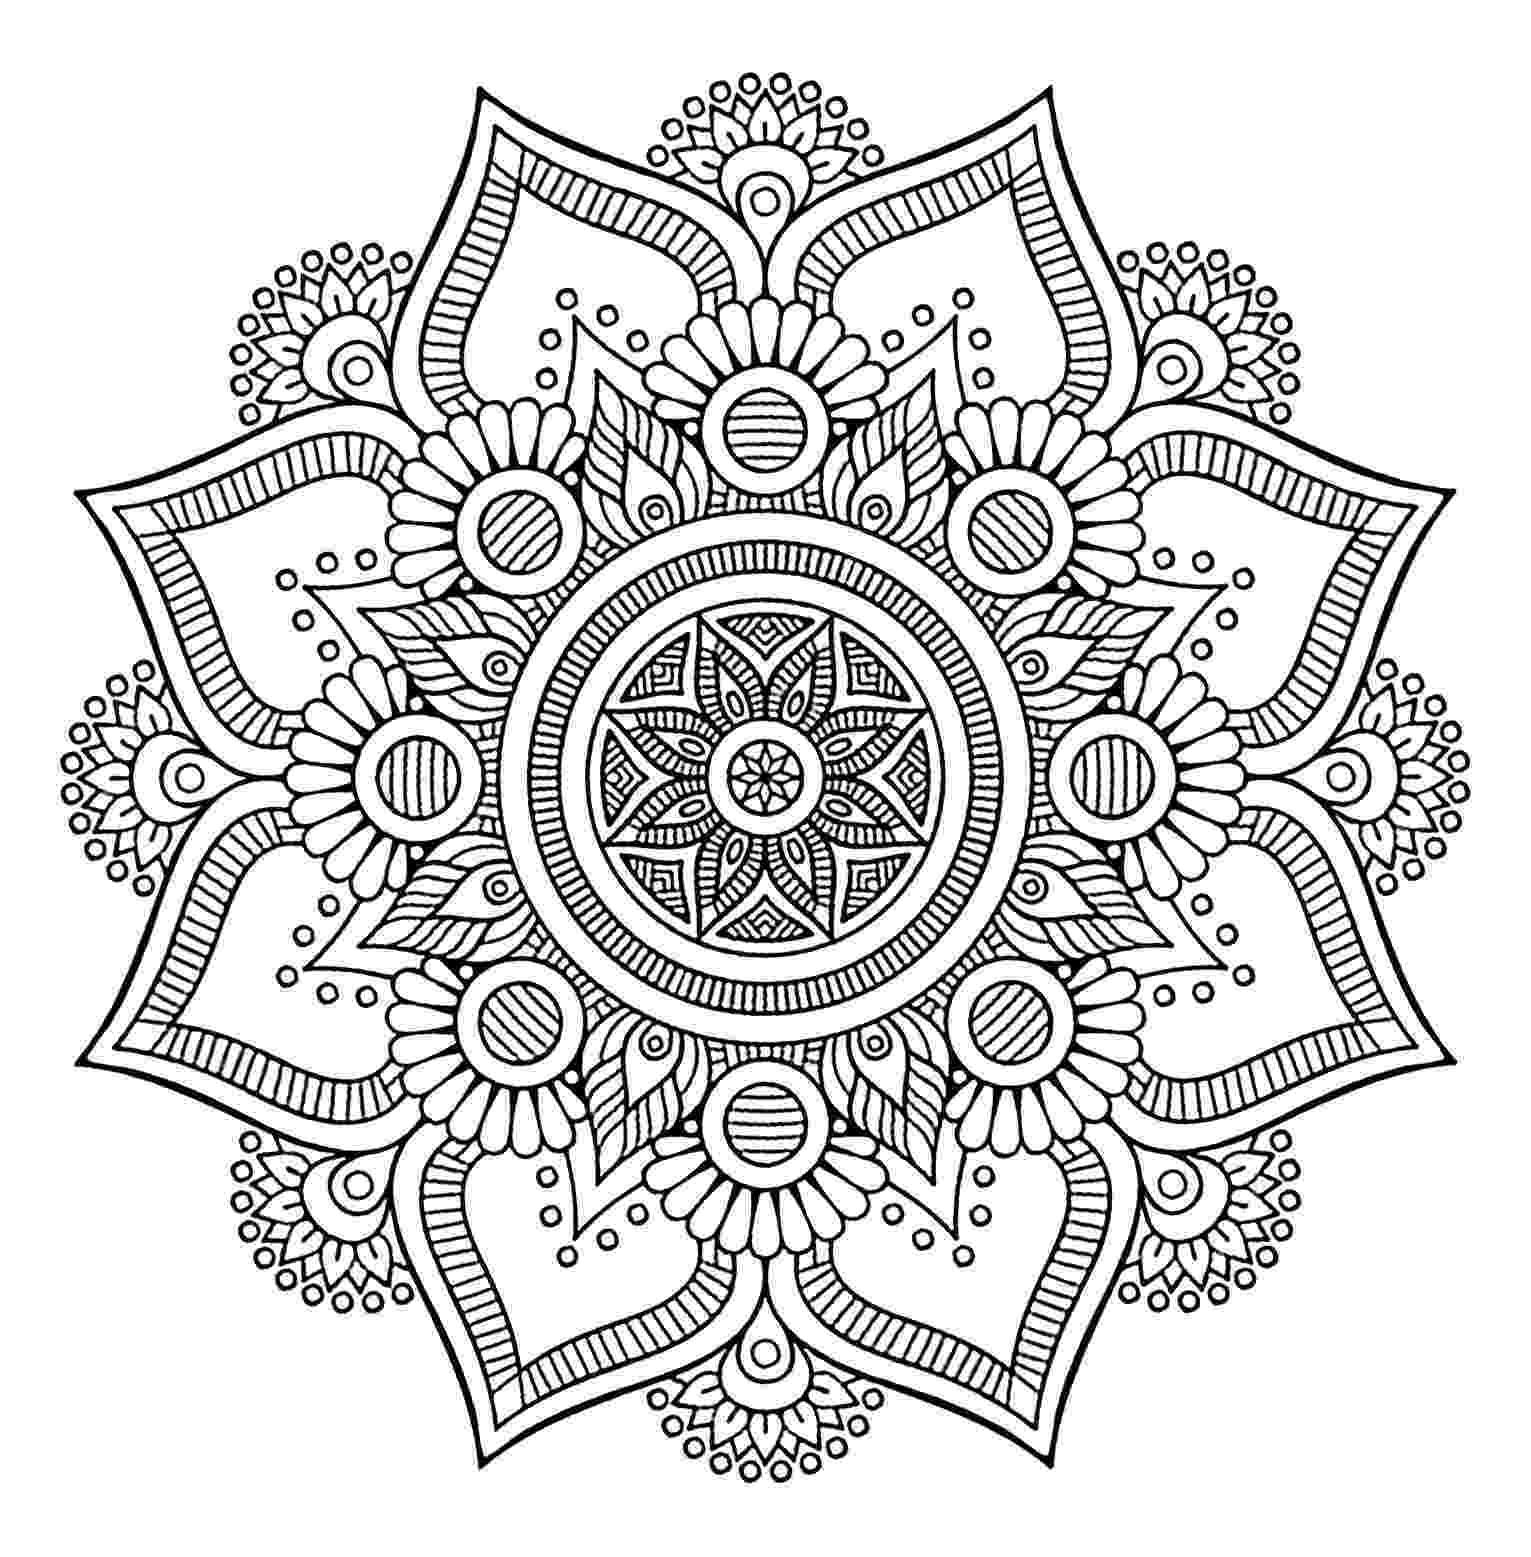 coloring pages for adults mandala 20 free printable mandala coloring pages for adults mandala for pages adults coloring